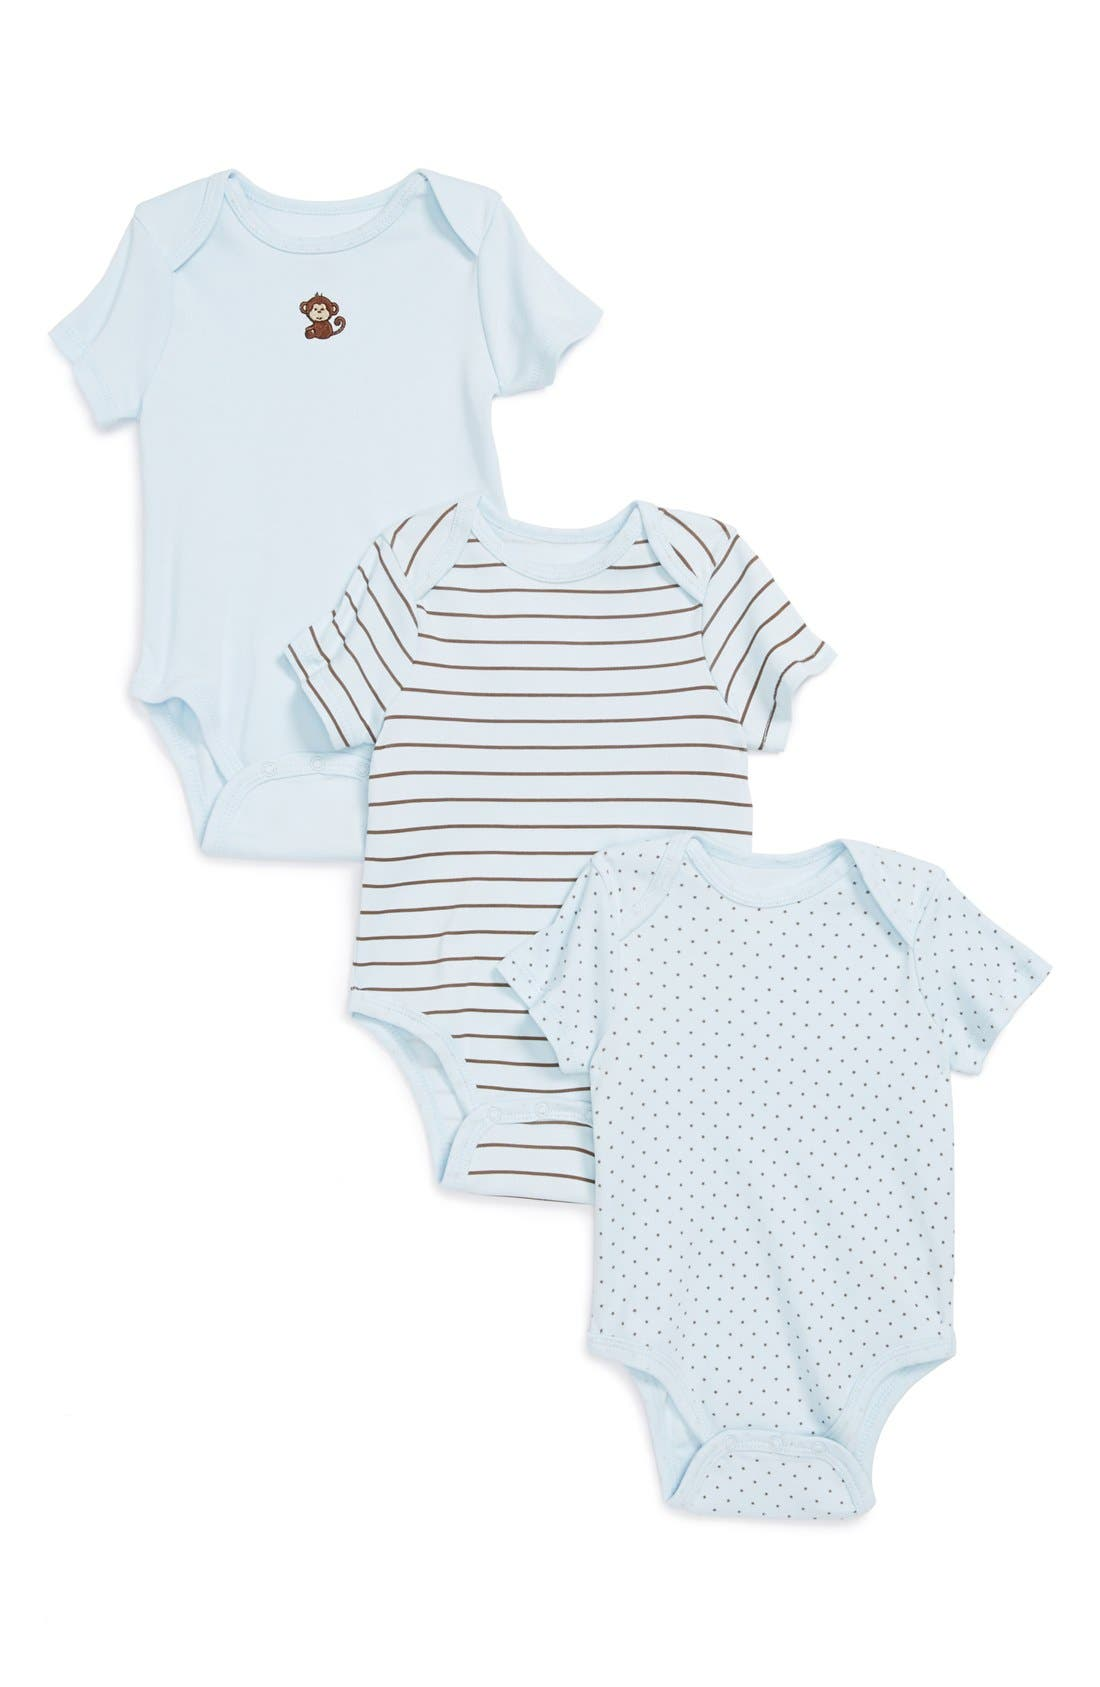 Alternate Image 1 Selected - Little Me 'Monkey' Bodysuits (Set of 3) (Baby Boys)